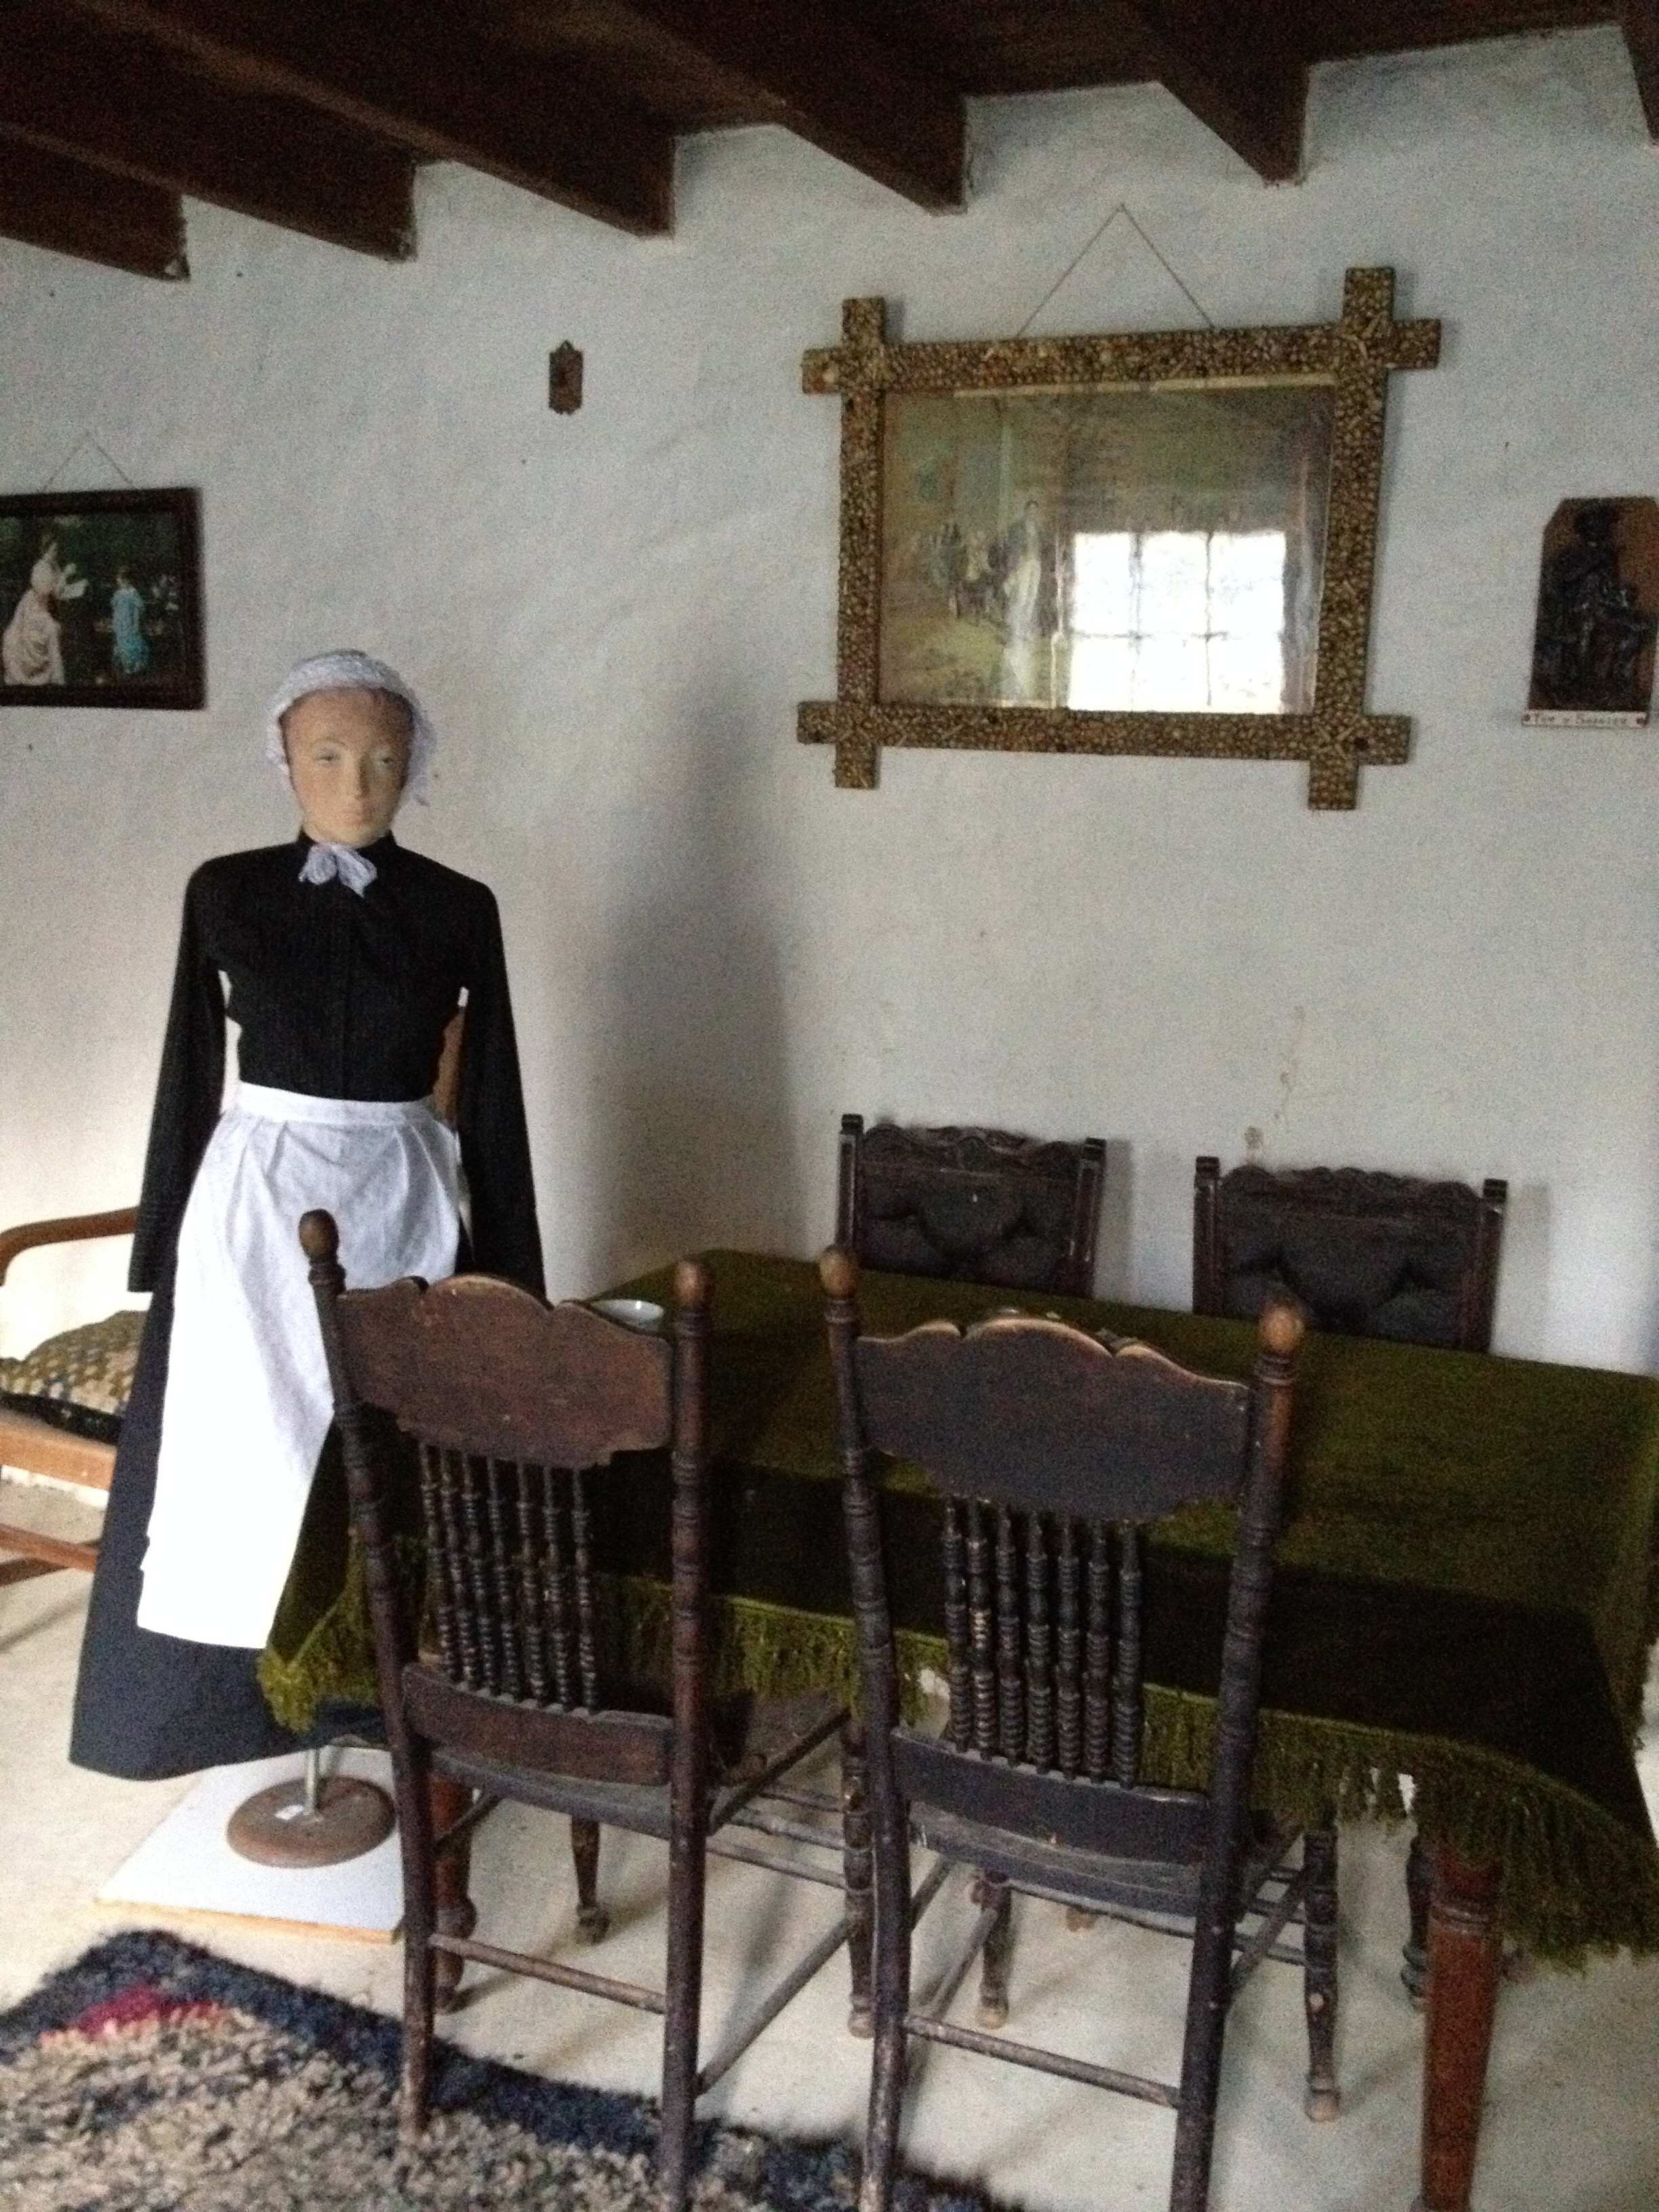 sod cottage figure.JPG